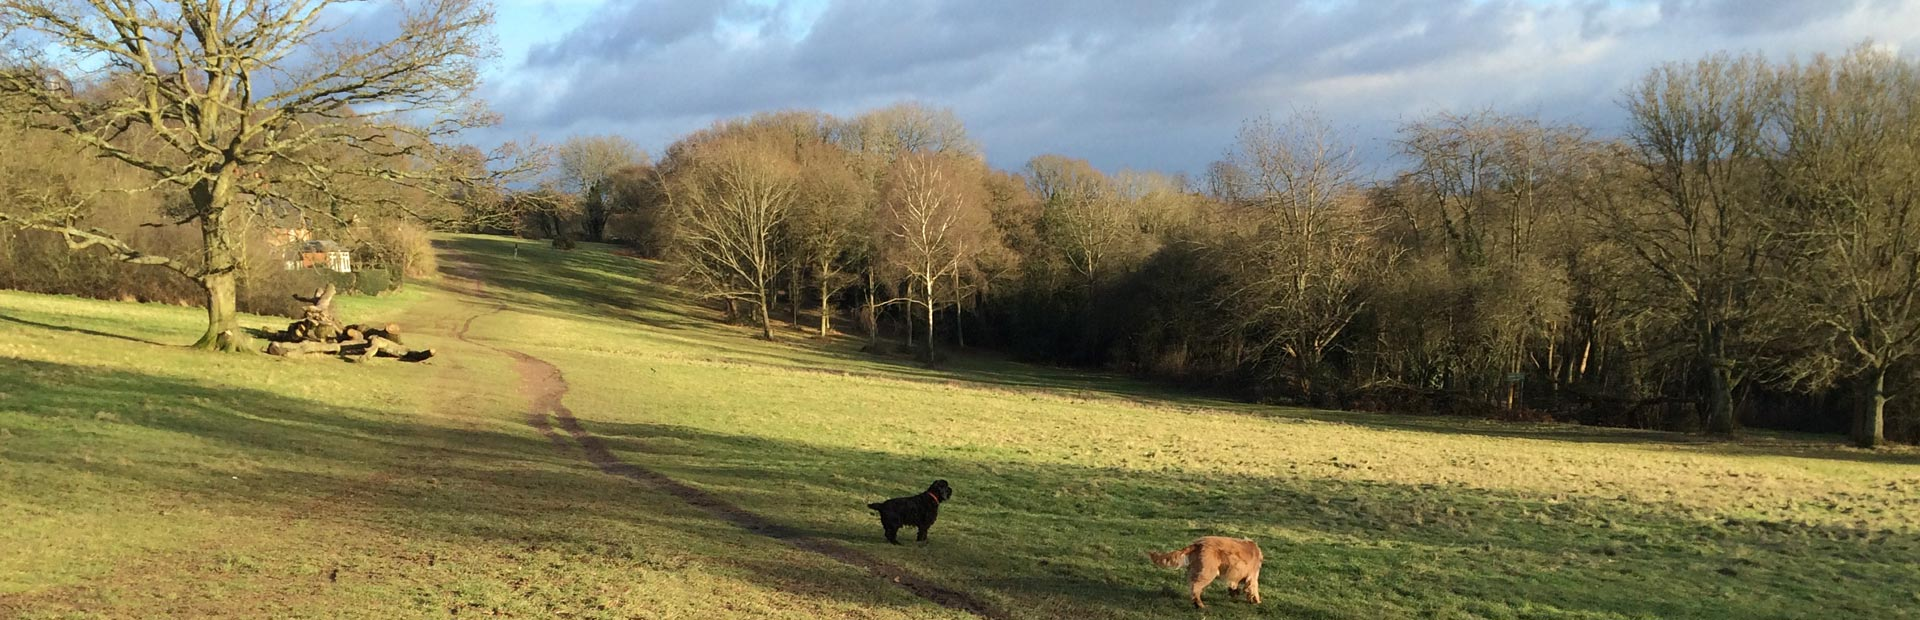 Buddy and Cracker walking at Chorleywood Common